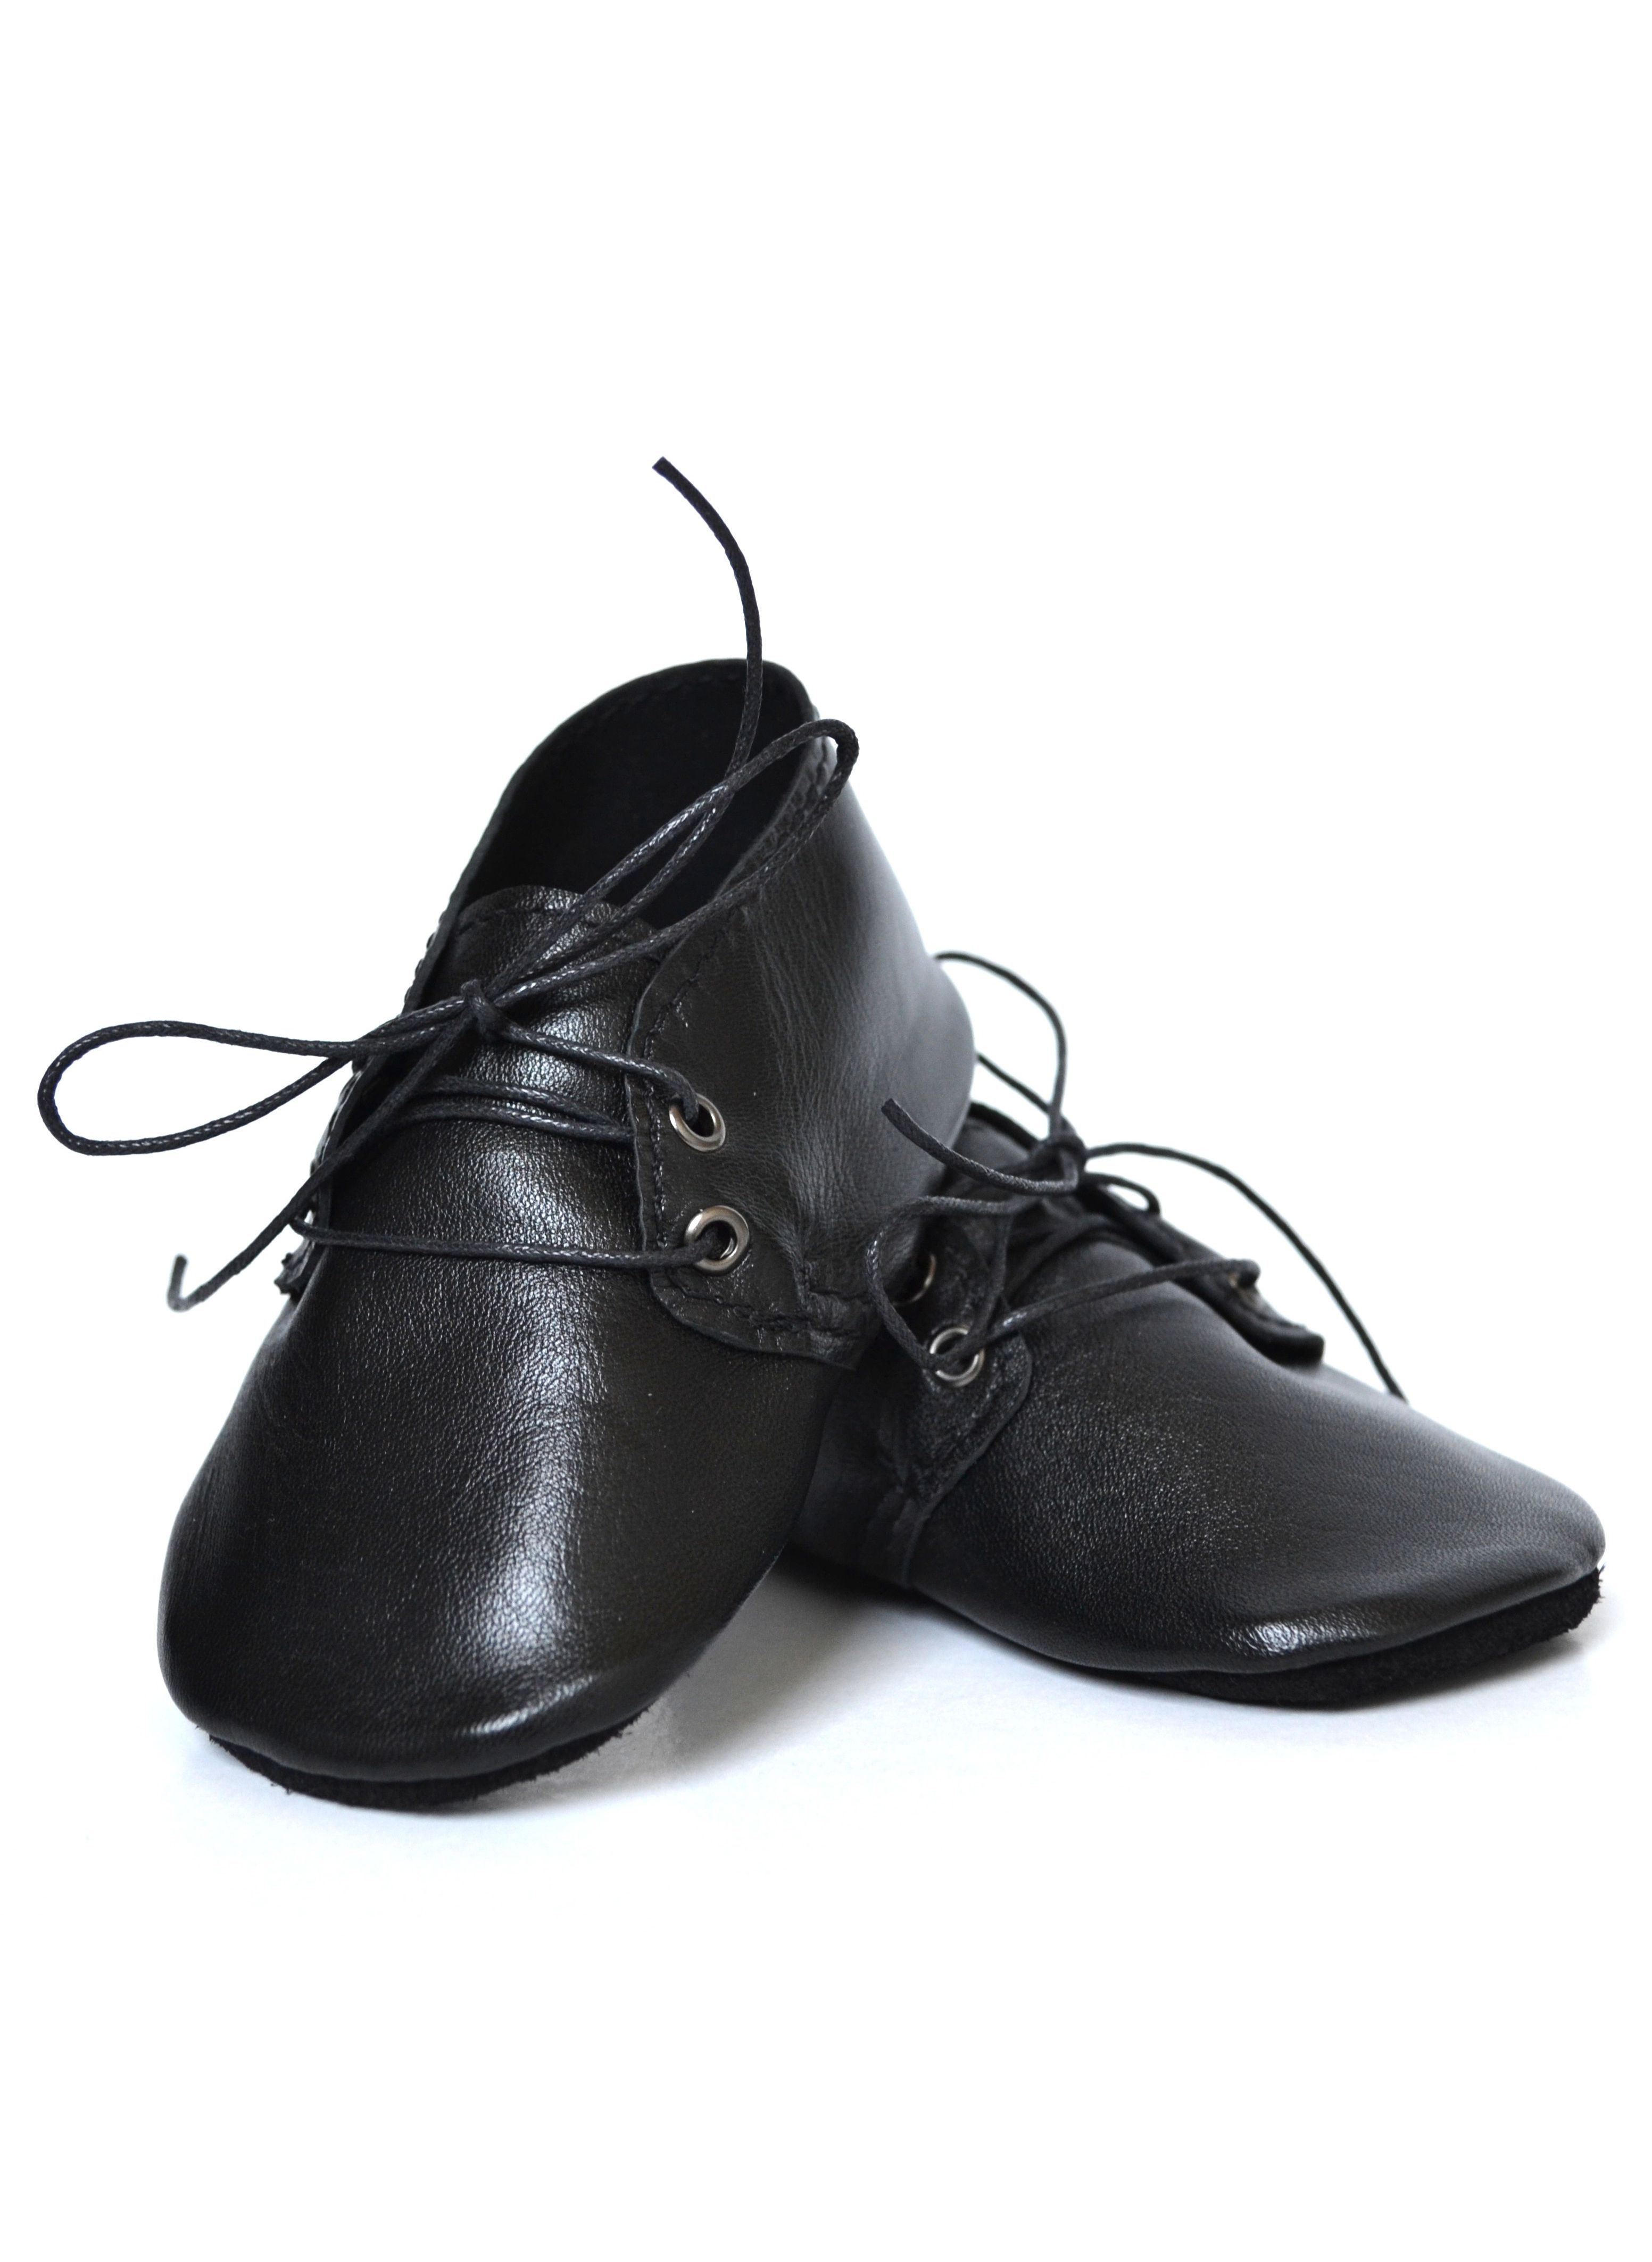 Handmade soft sole leather baby shoes Baby boy oxfords Black